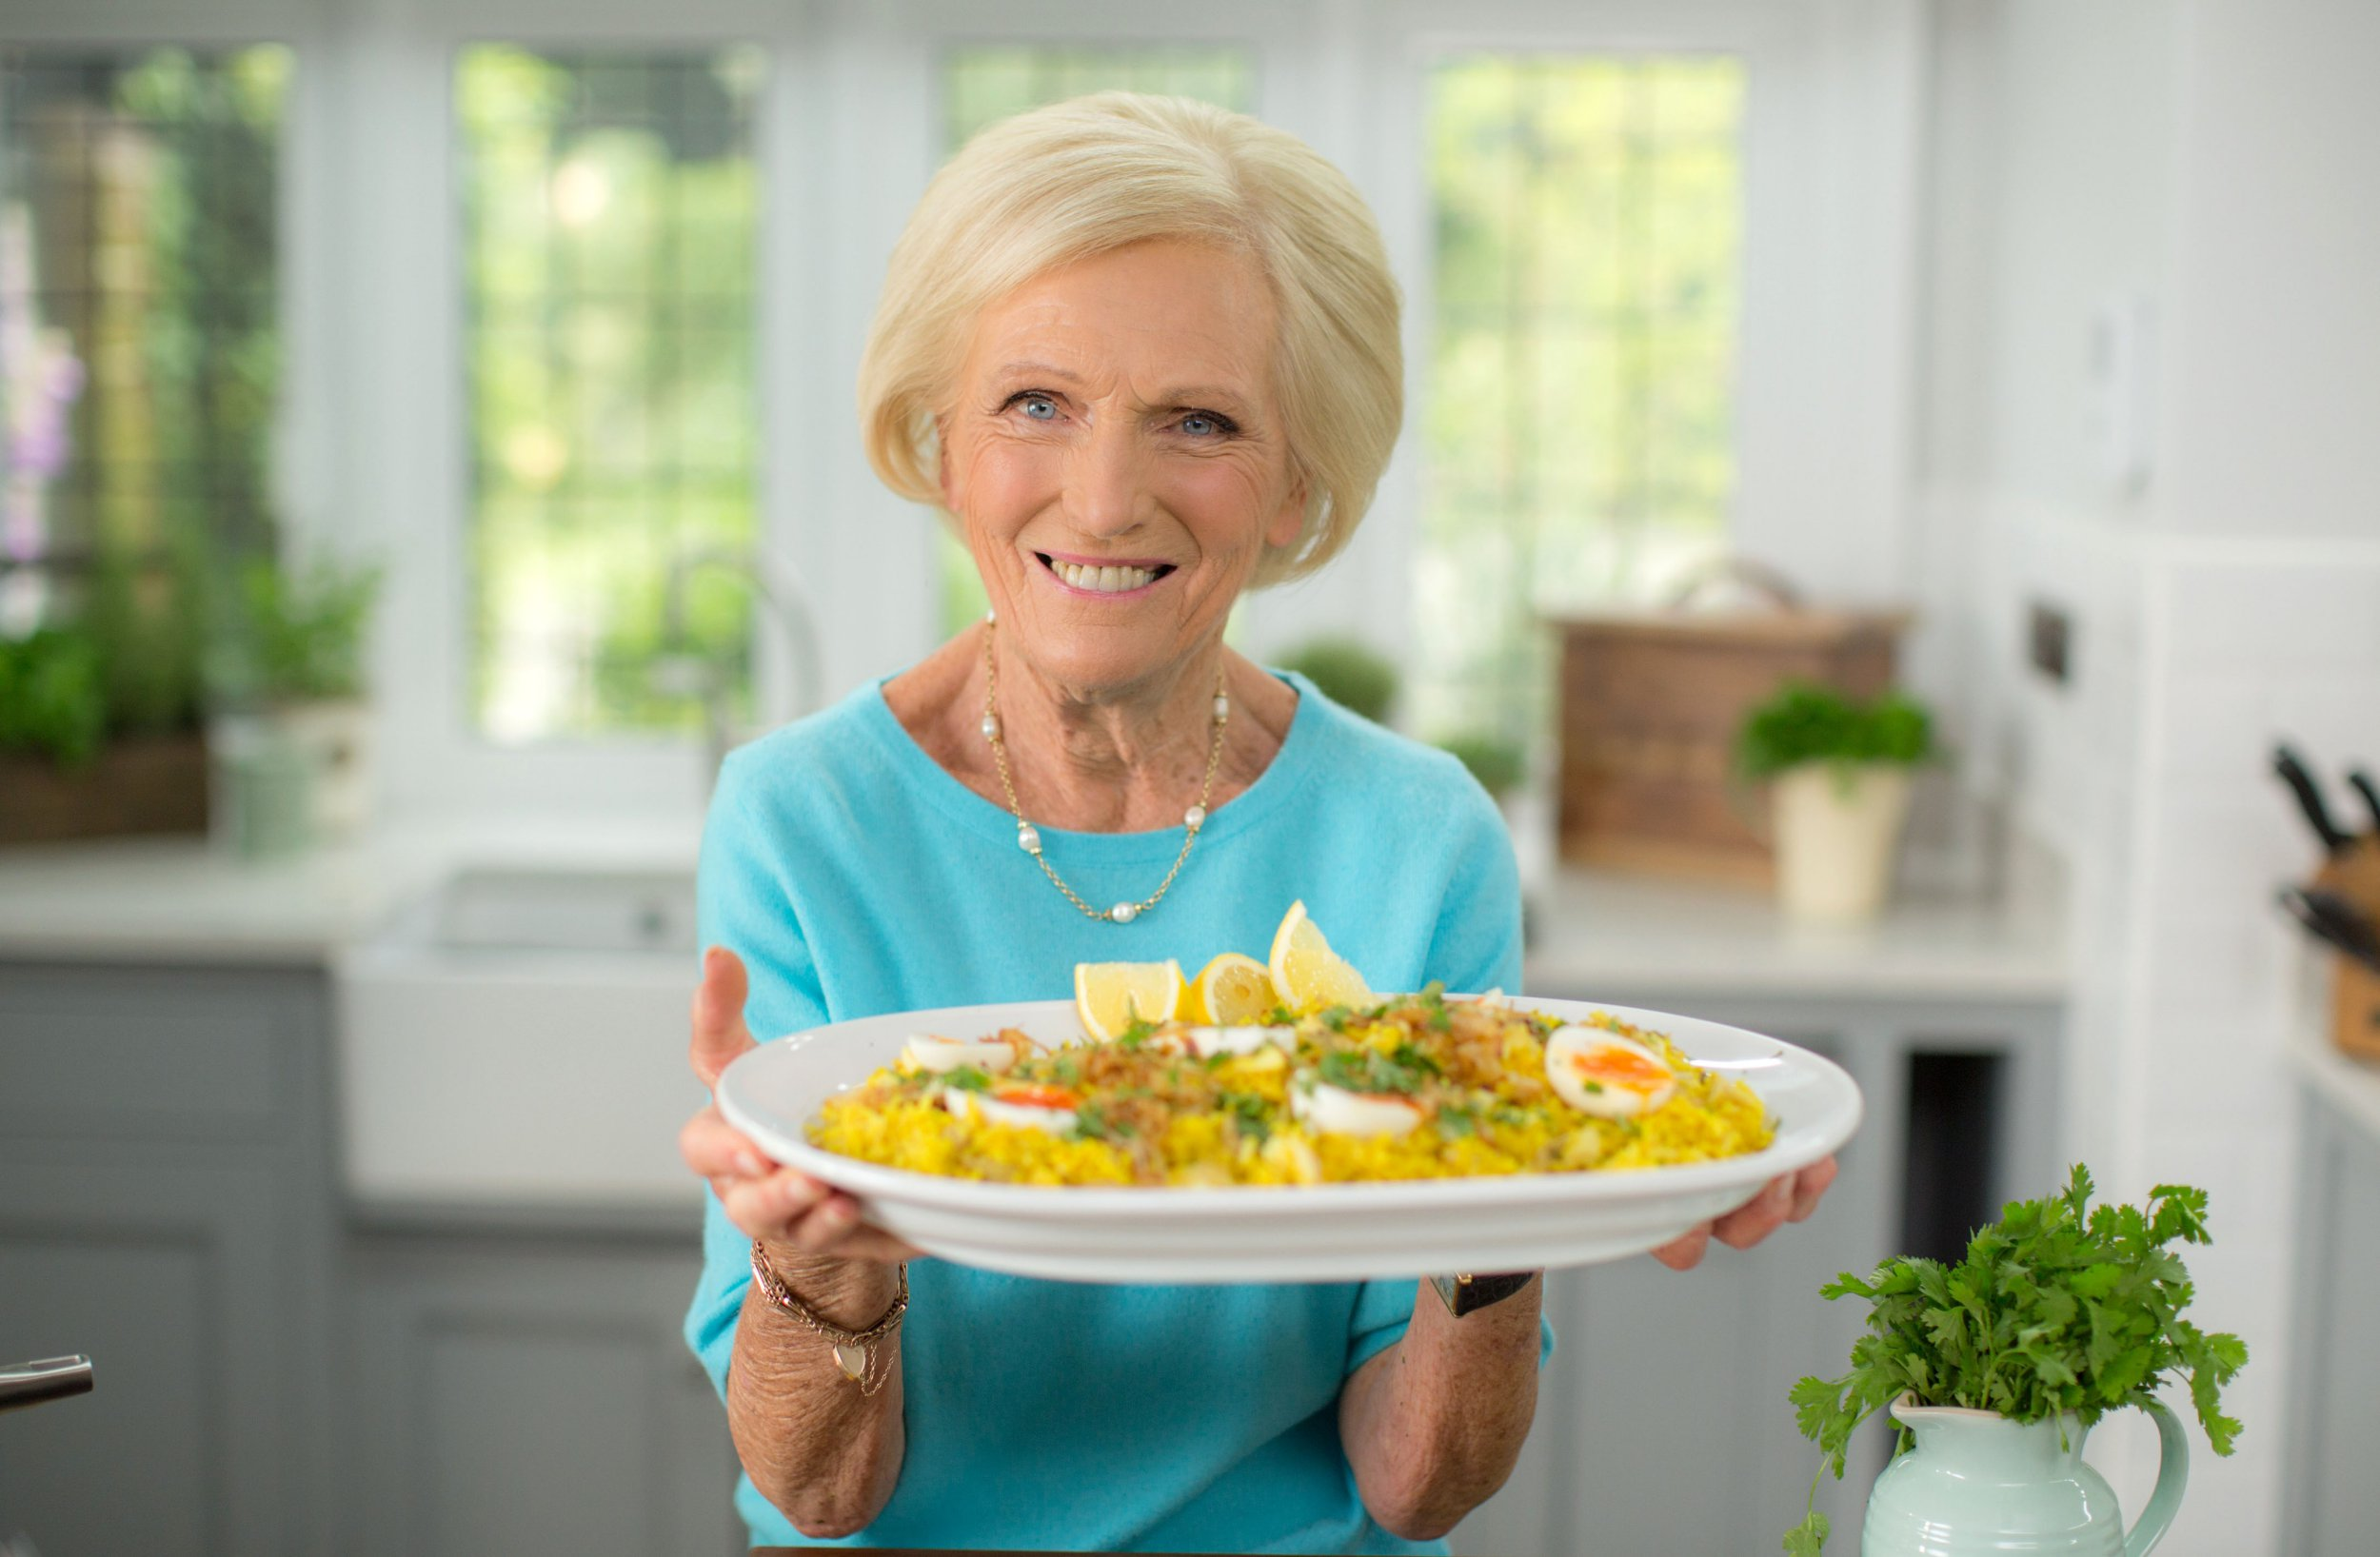 Mary Berry arrested at airport because she had 'flour and sugar in little plastic bags'